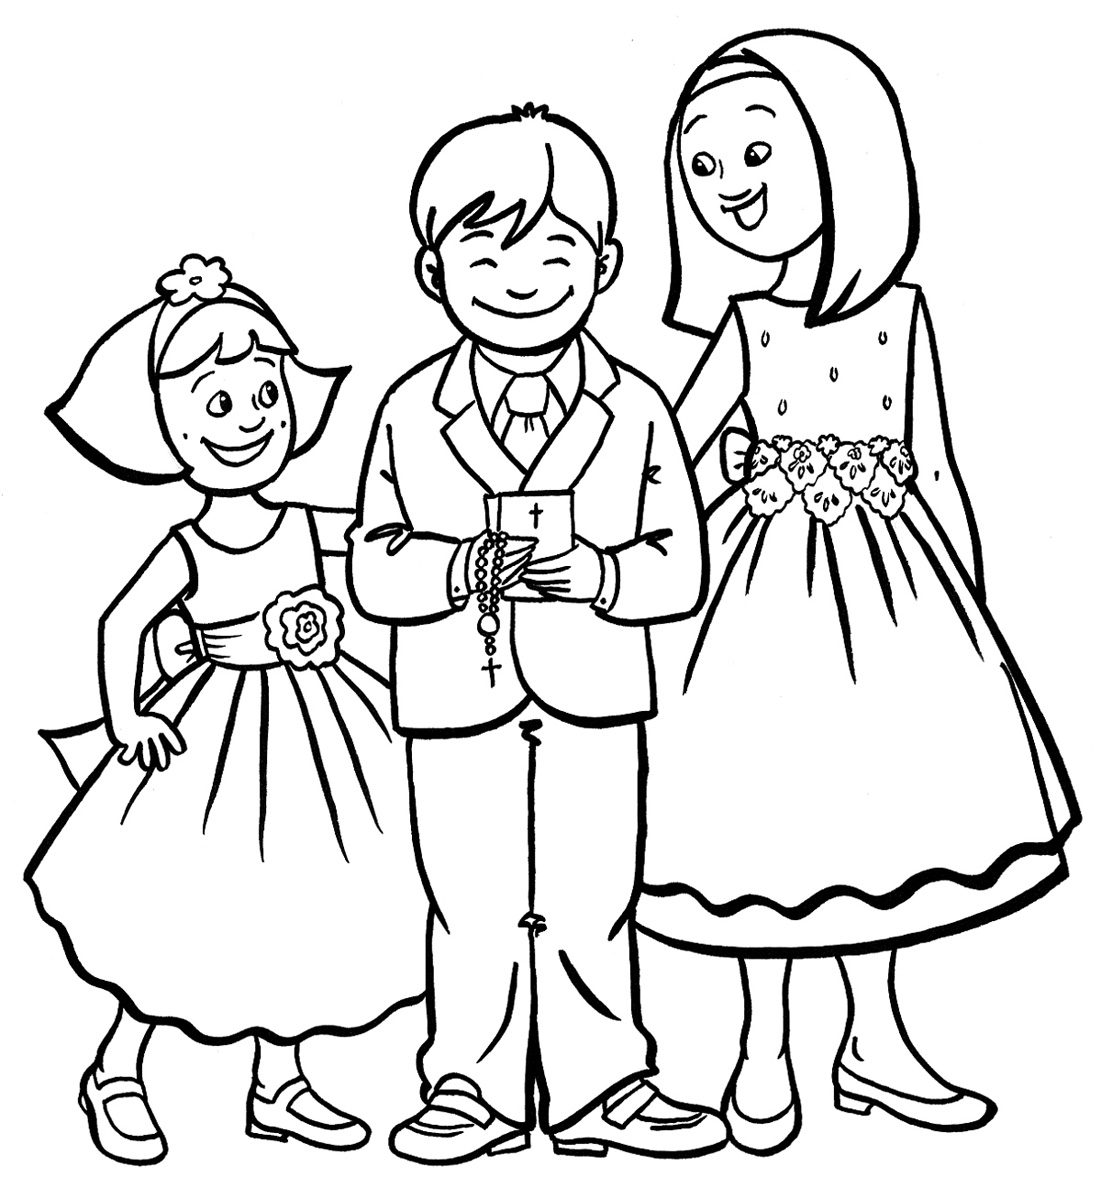 Free Girl And Boy Coloring Page, Download Free Clip Art, Free Clip Art on  Clipart Library | 1200x1101